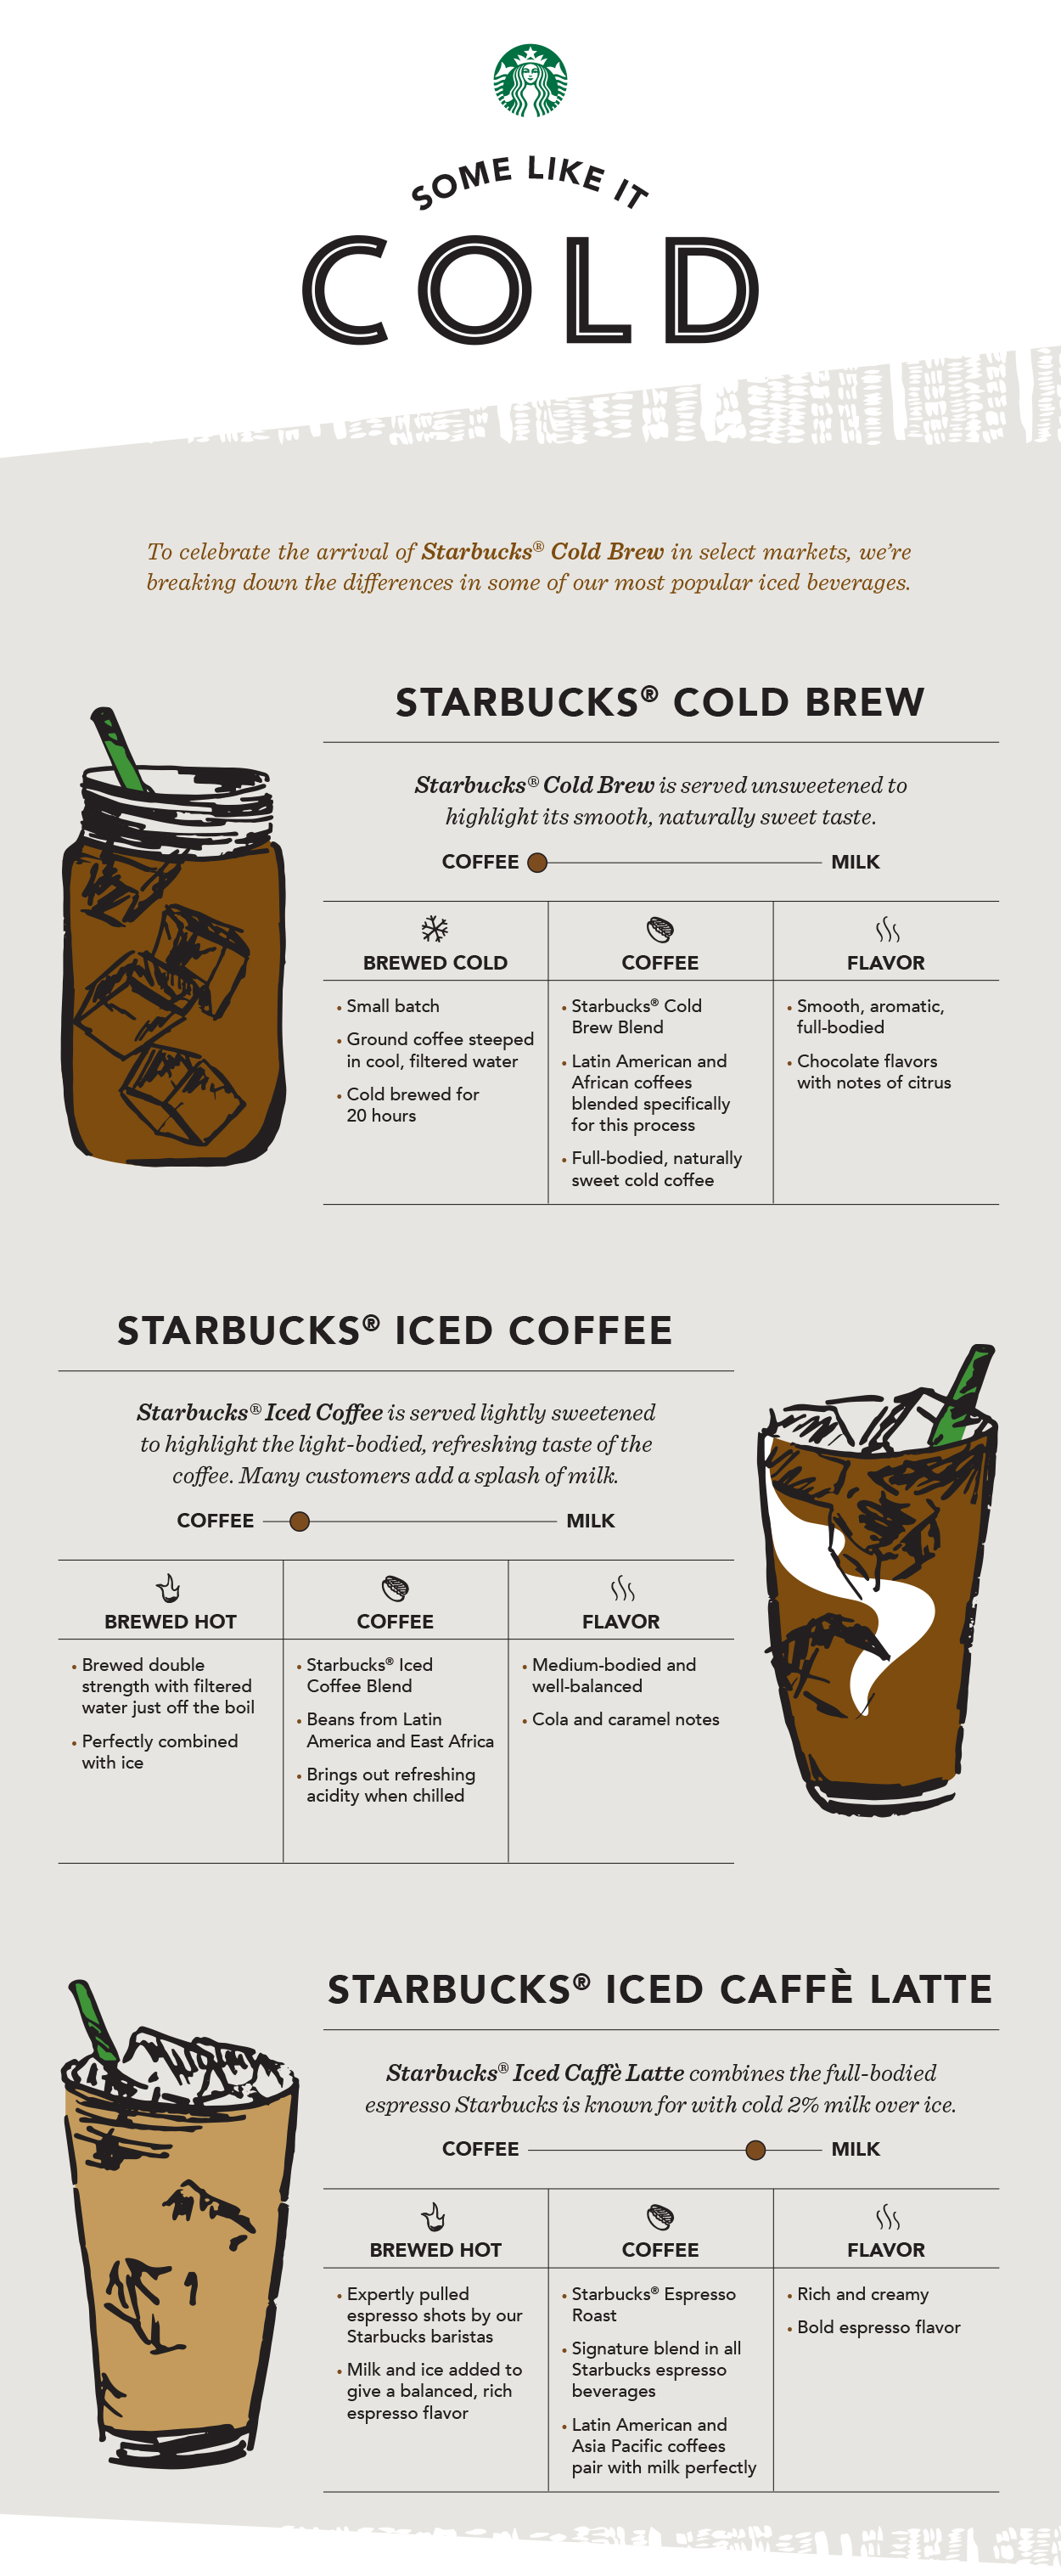 Starbucks to Launch New Cold Brew Iced Coffee in Over 2,600 U.S. Stores